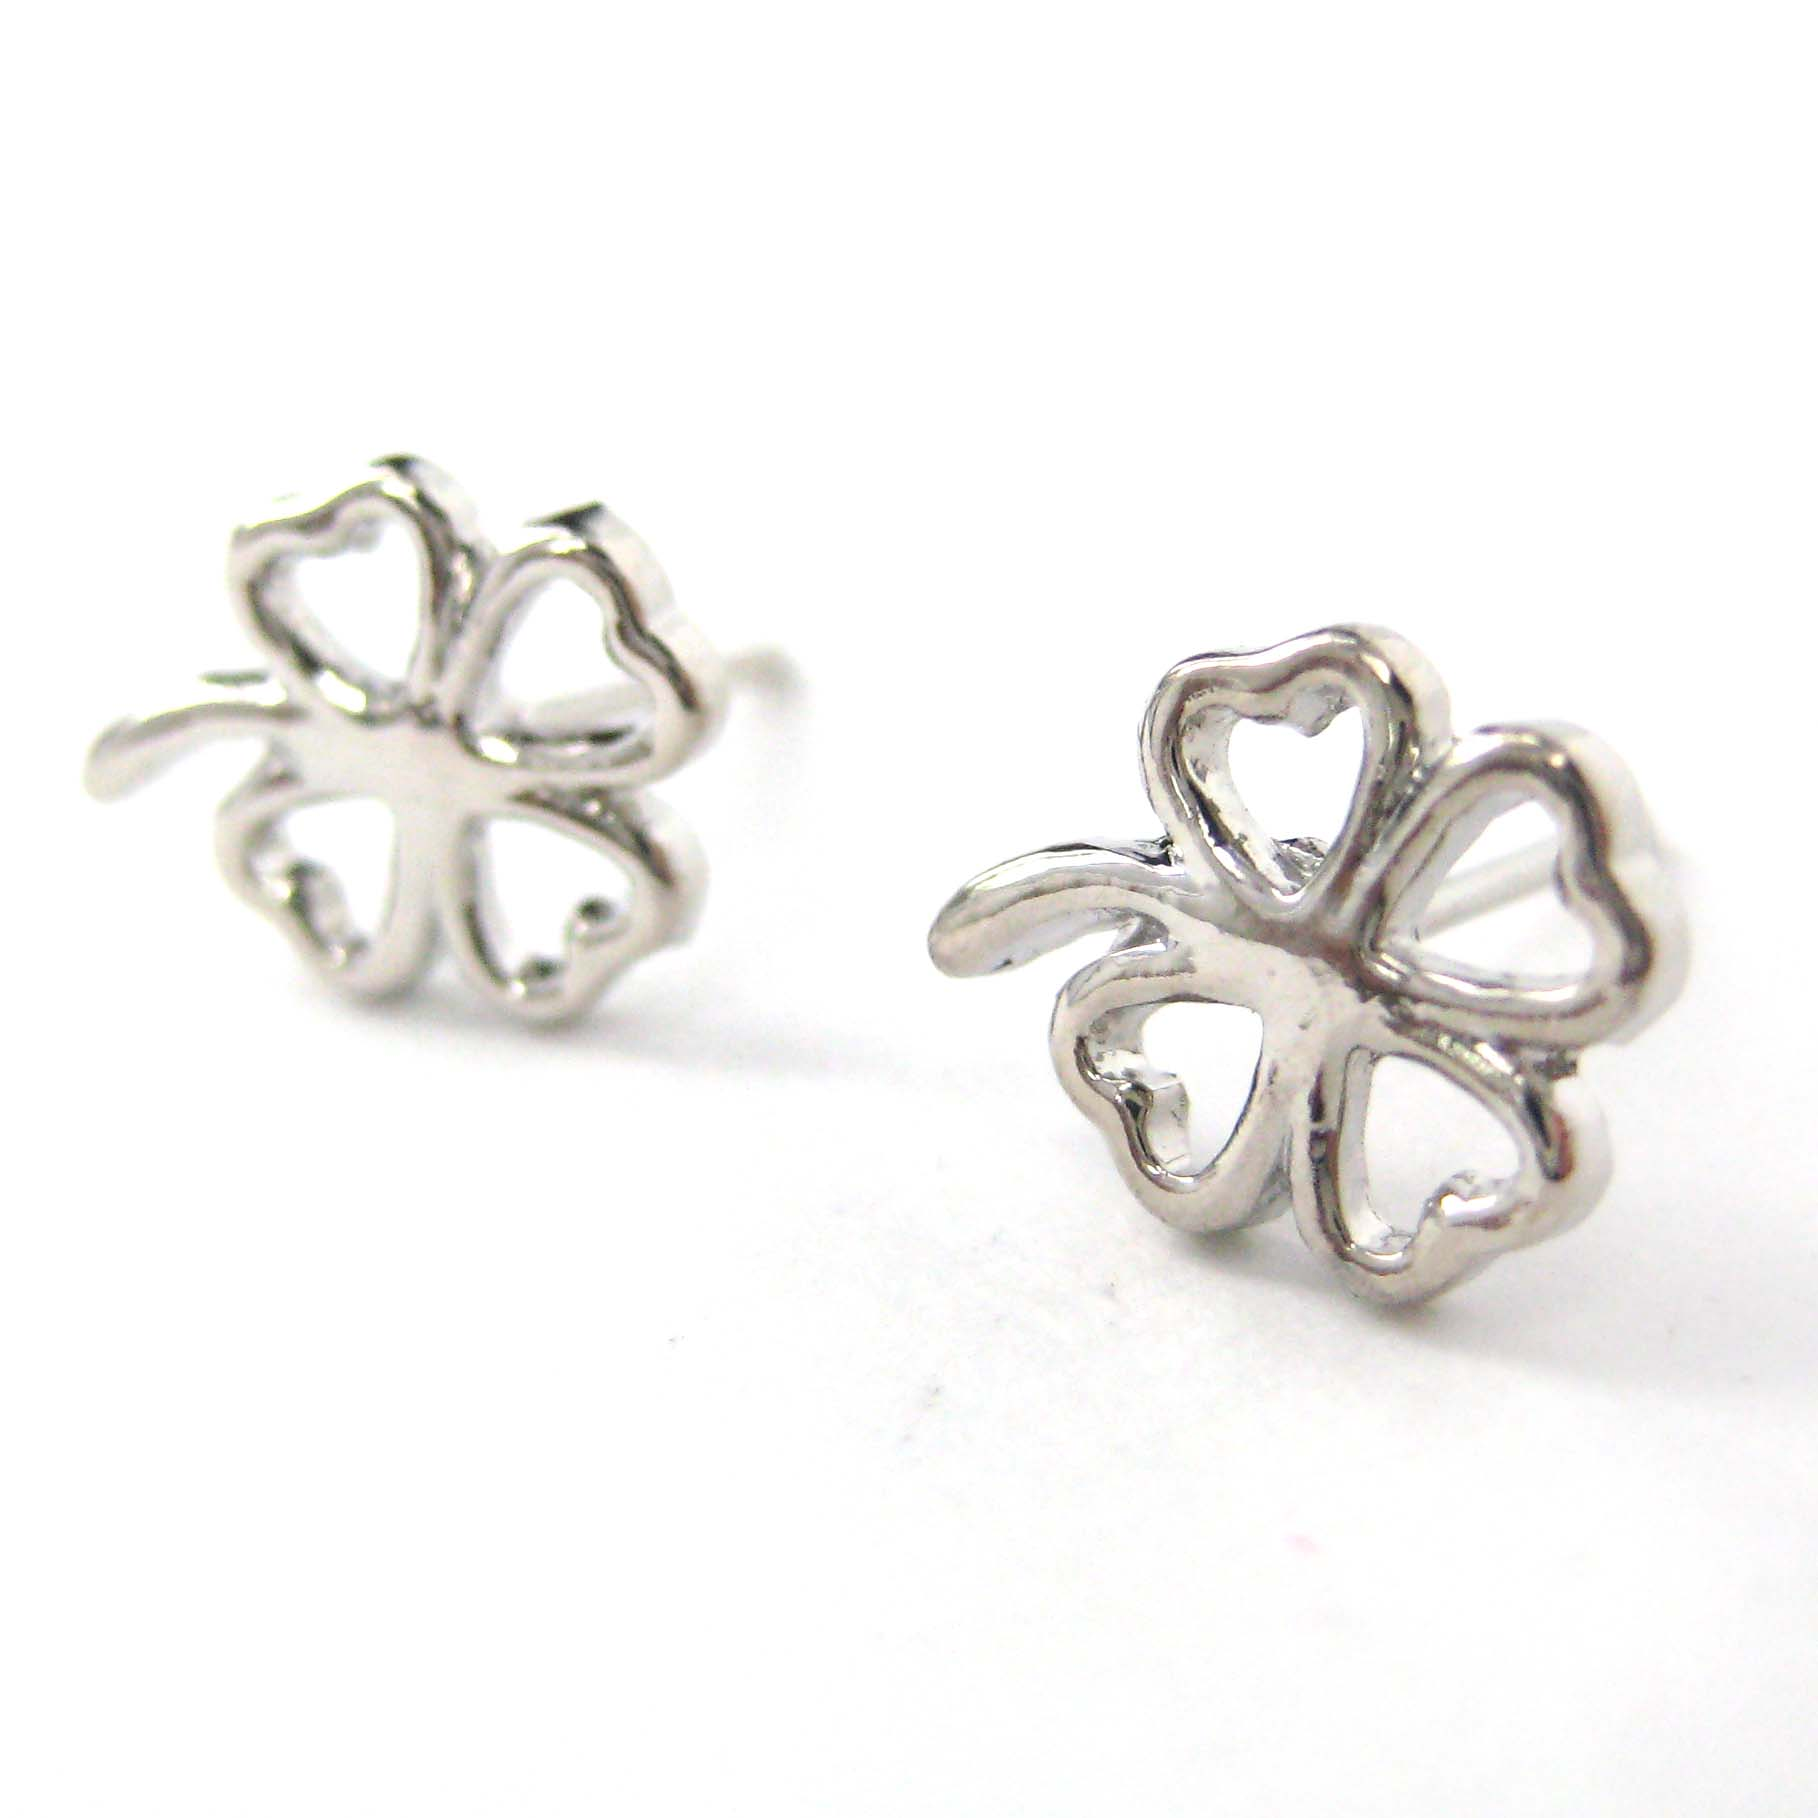 clover earrings studs four leaf clover floral cut out stud earrings in silver 9643